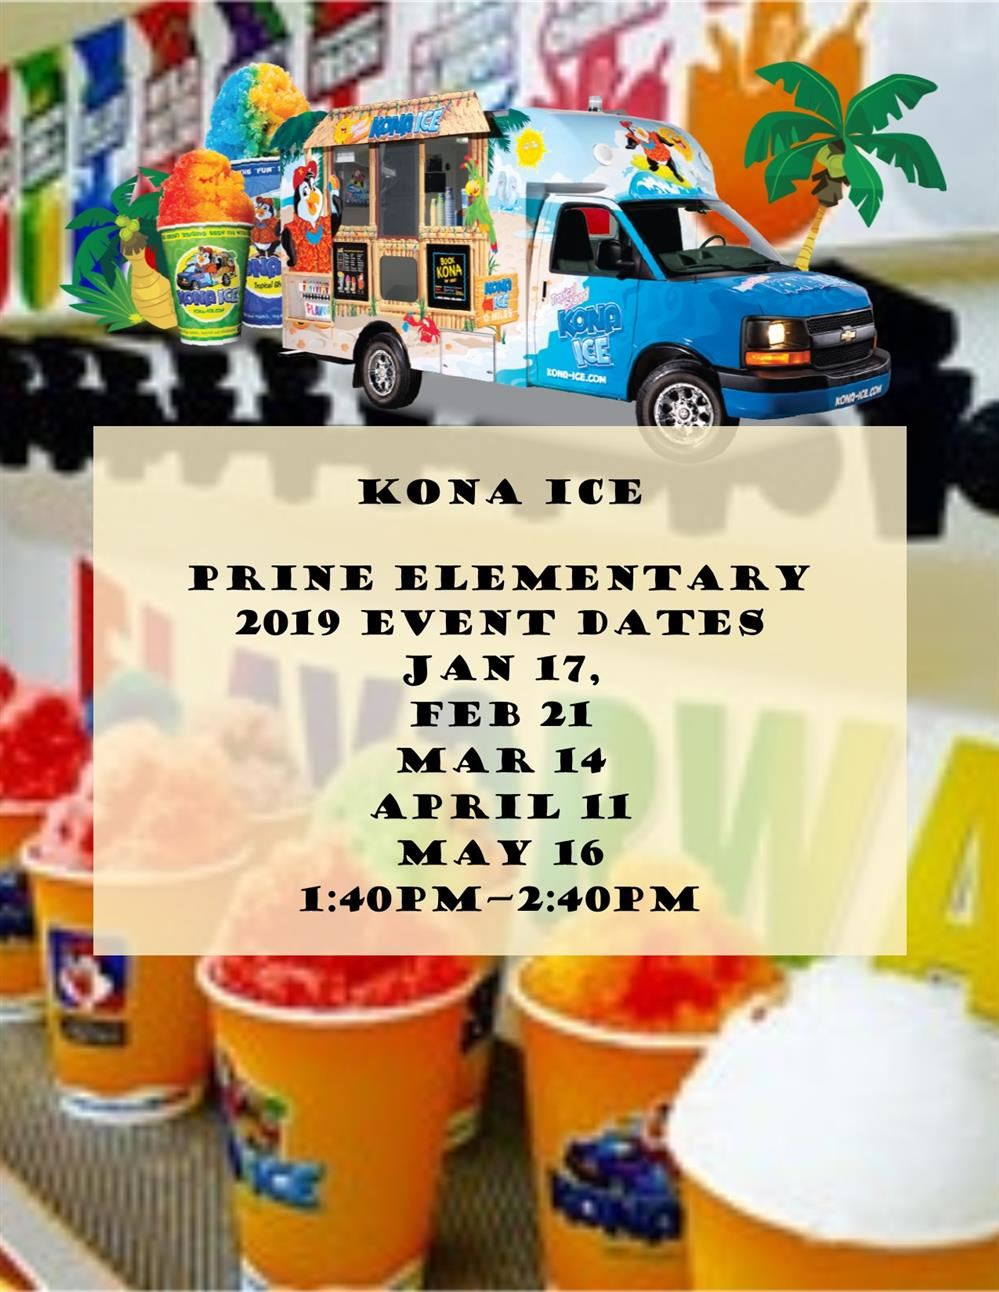 Kona Ice Schedule